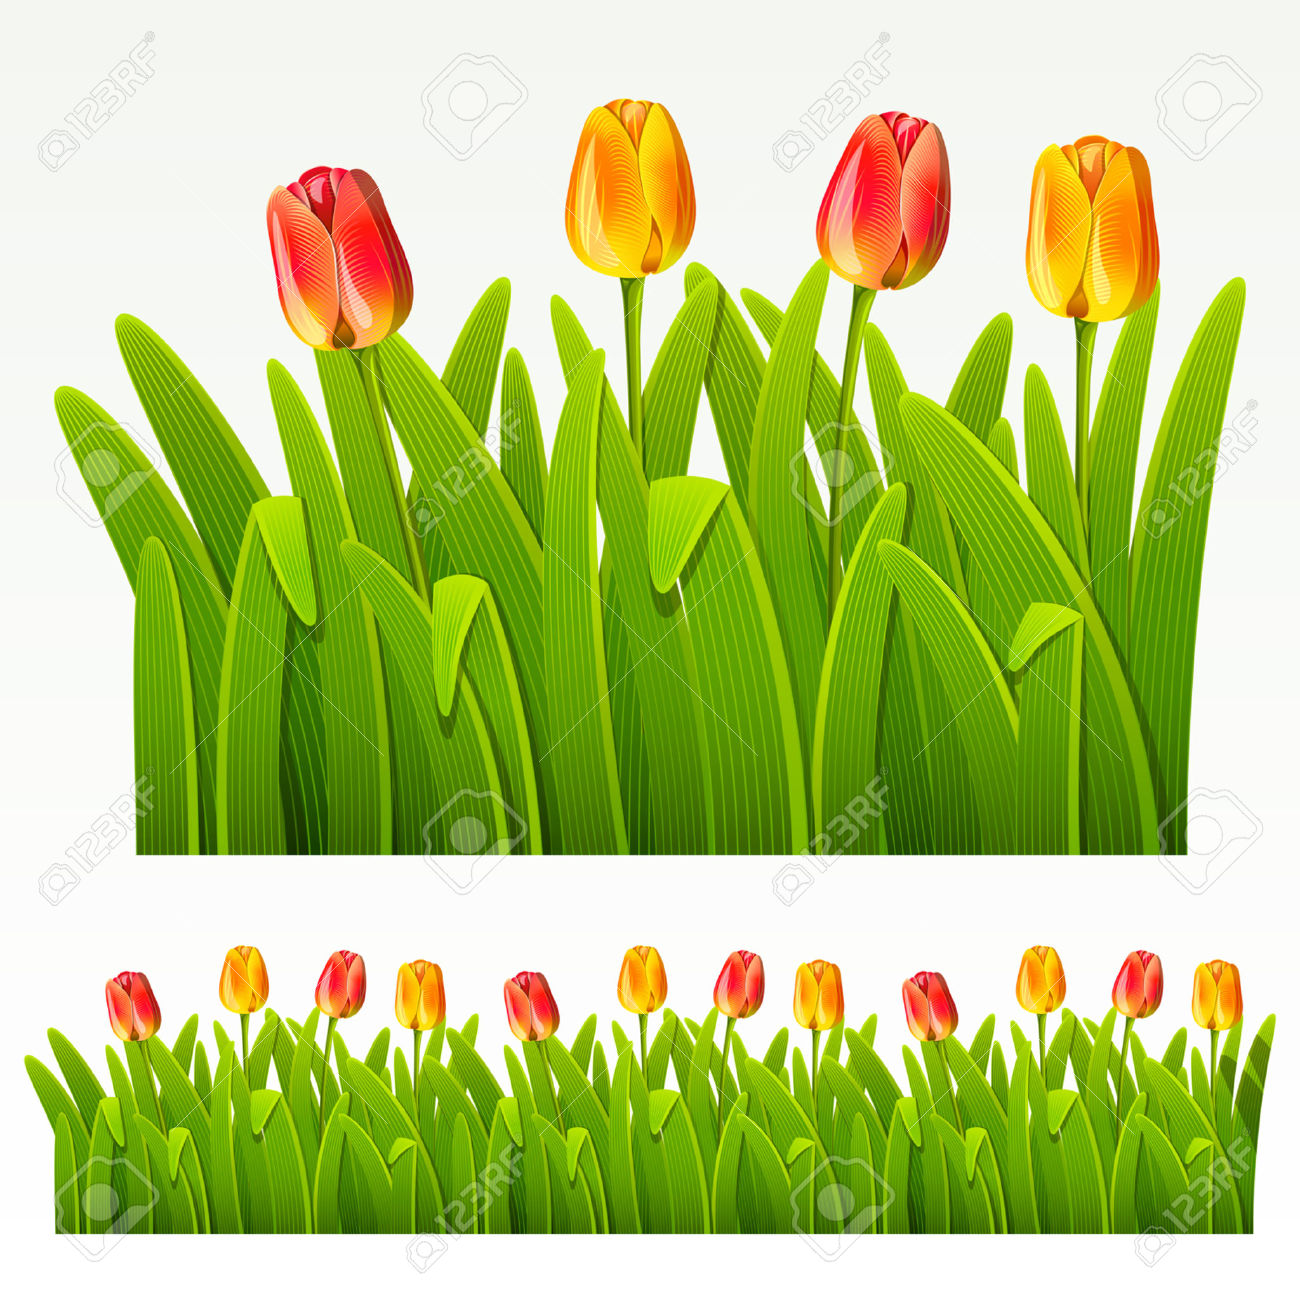 Frame clipart tulip Tulips Tulip Red Clipart cliparts